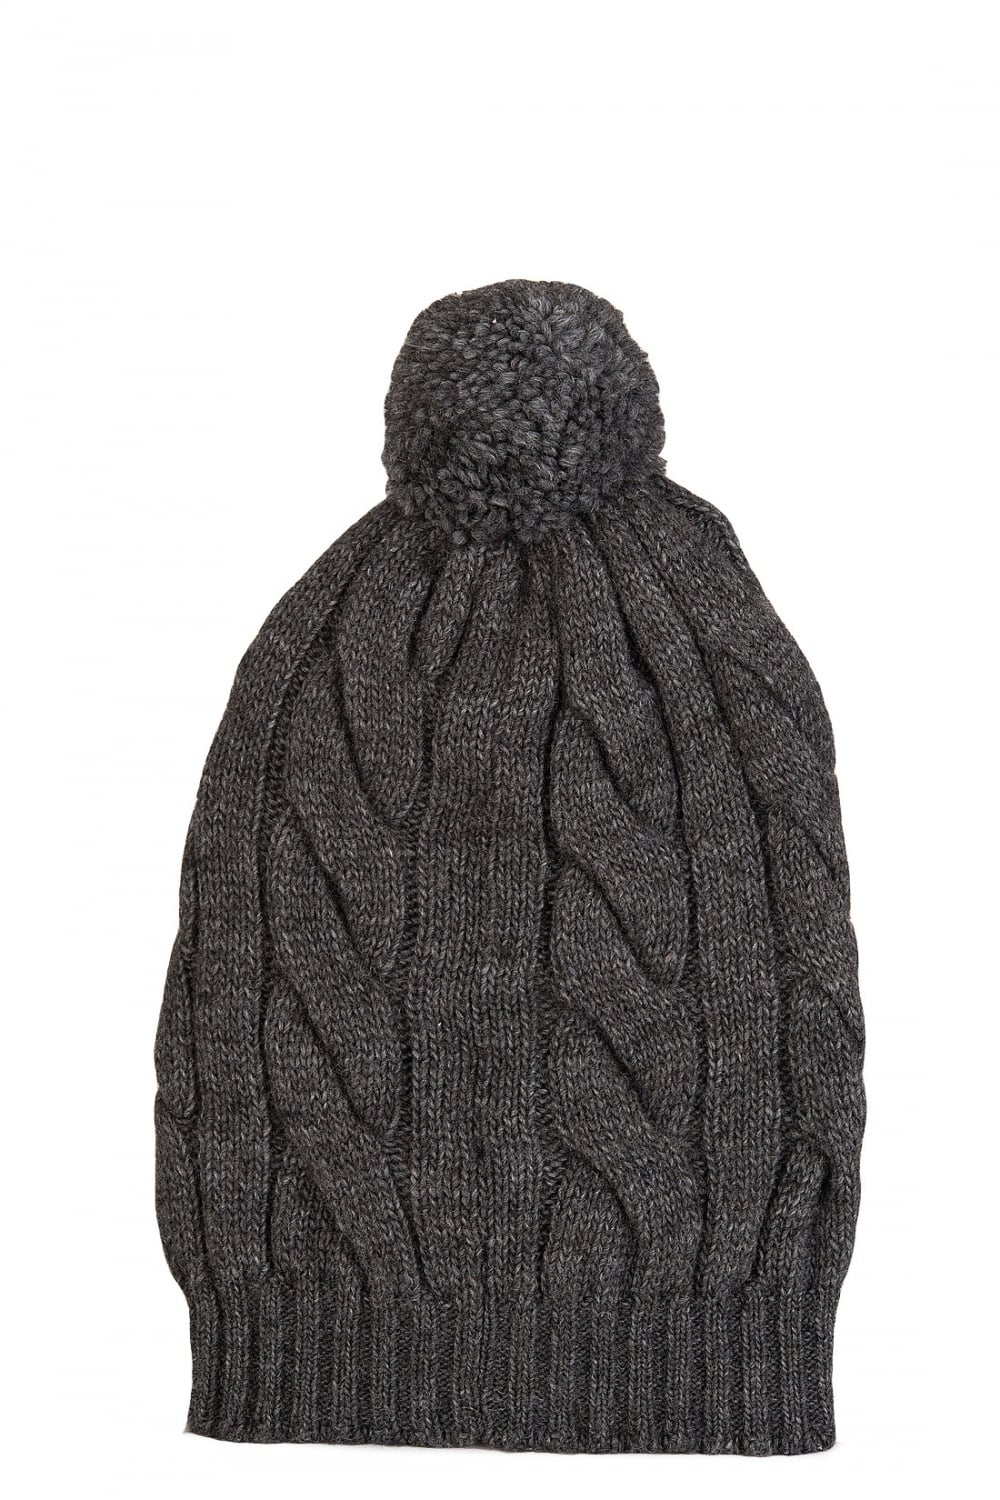 6114718f5 Grenoble Cable Knit Bobble Beanie Hat Grey